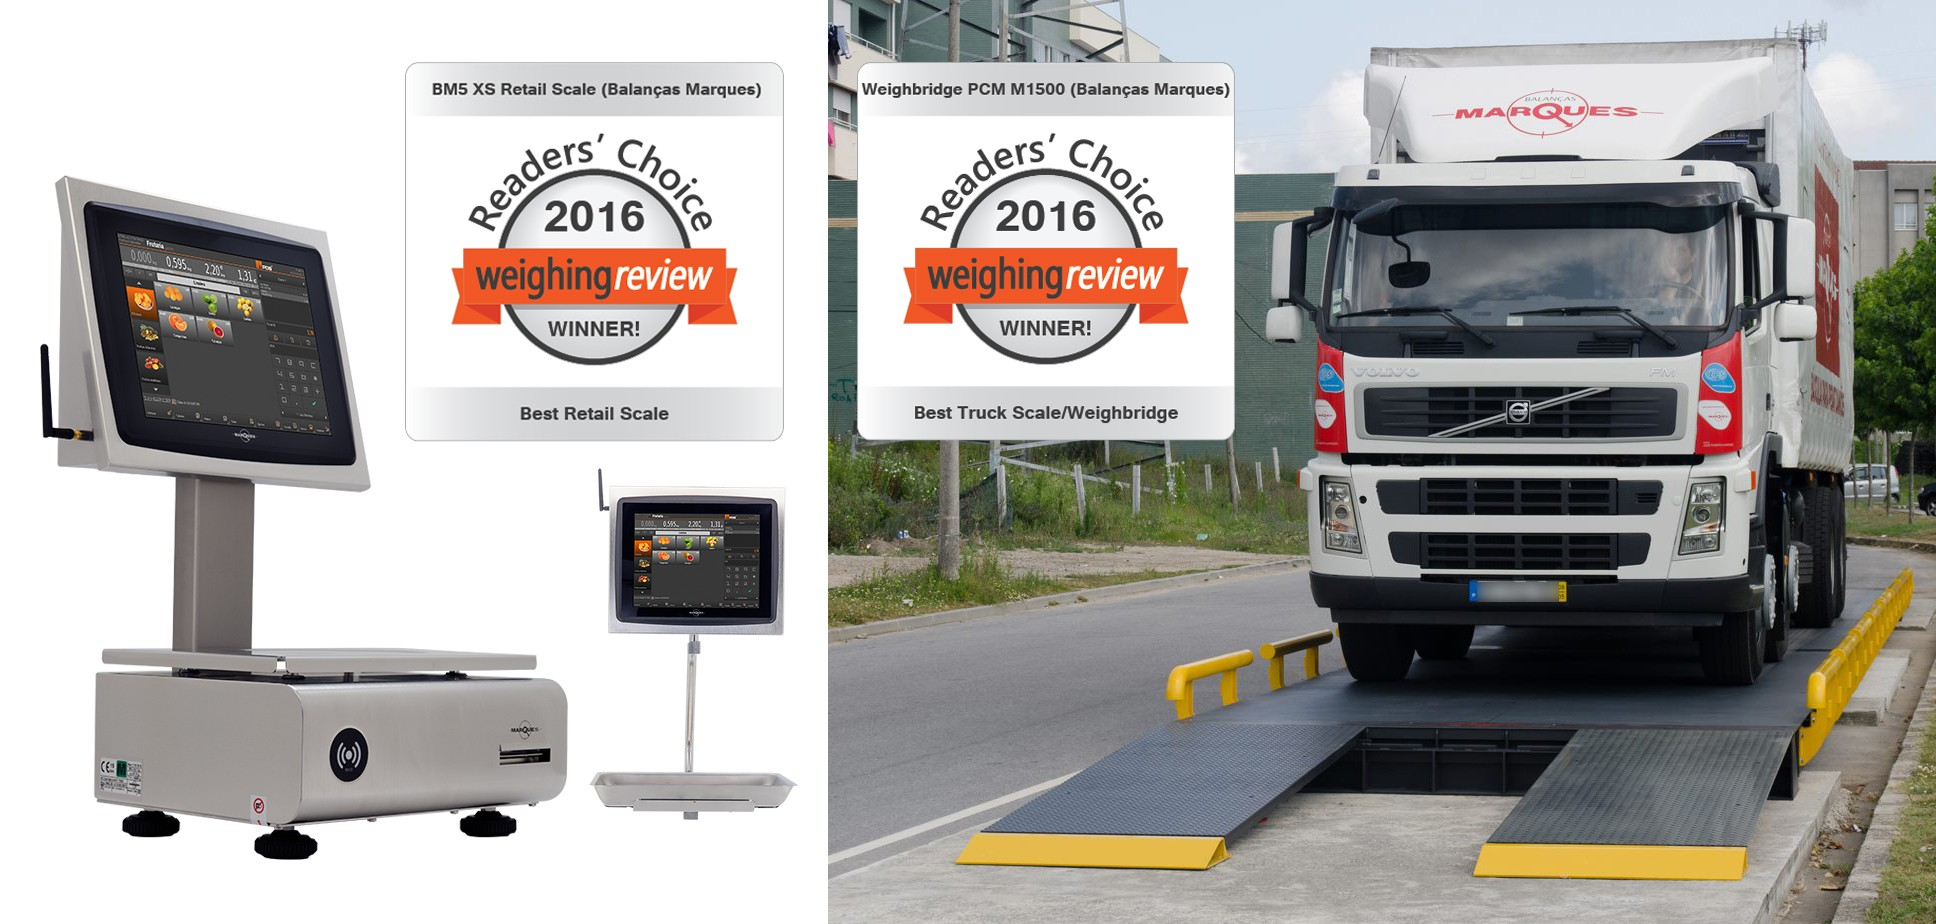 Balanças Marques products win international weighing awards